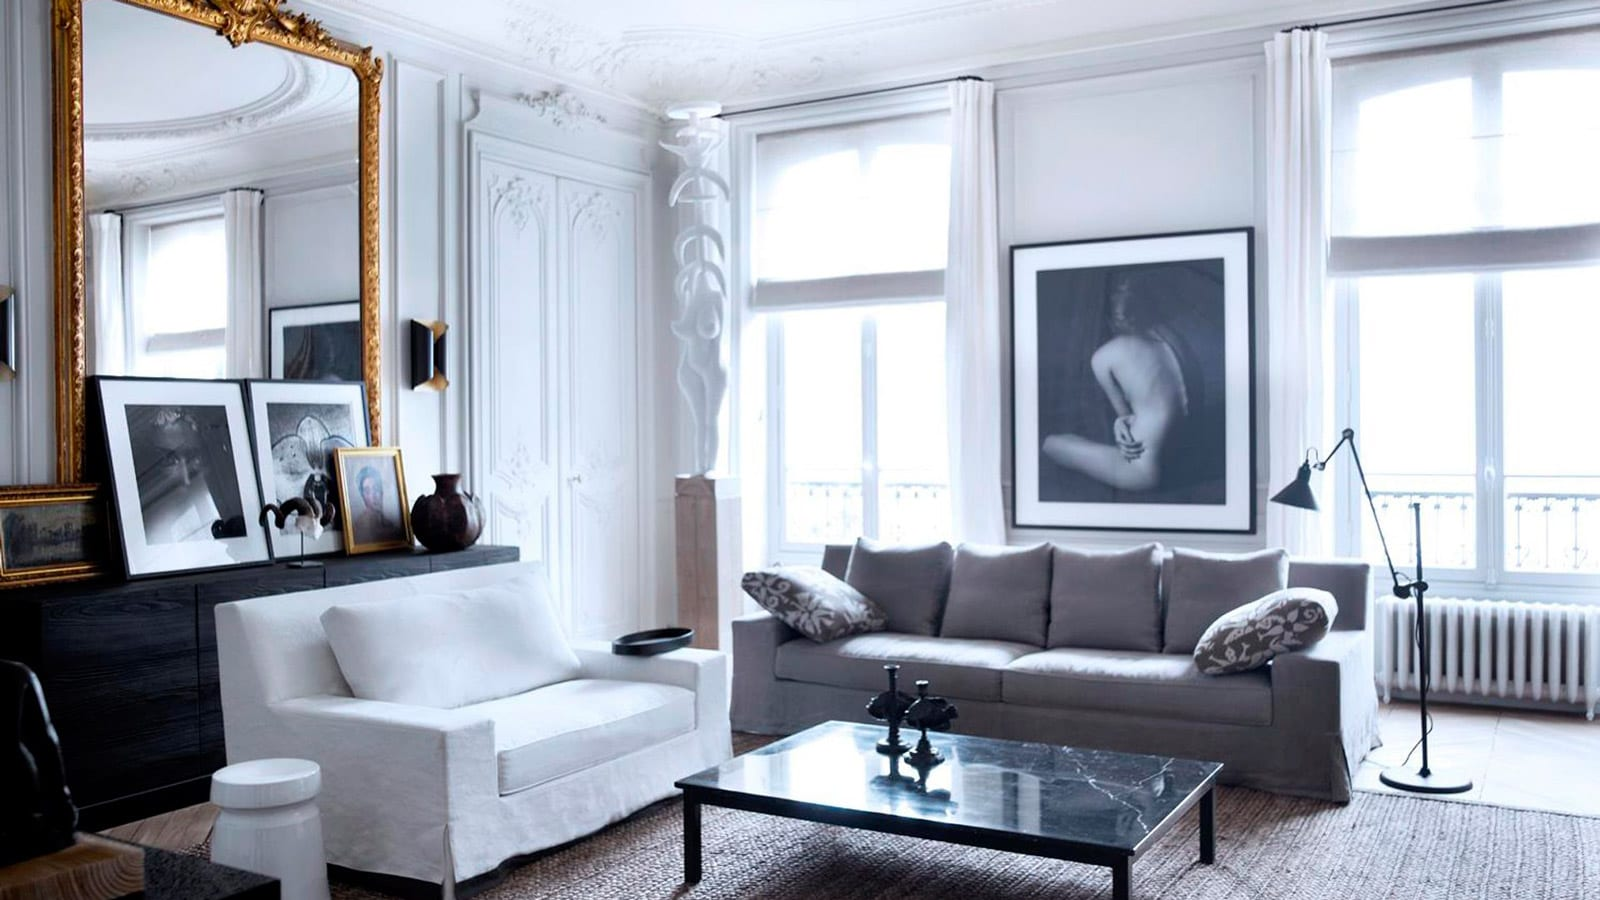 A Very Chic Paris Apartment | Style&Minimalism - photo#37